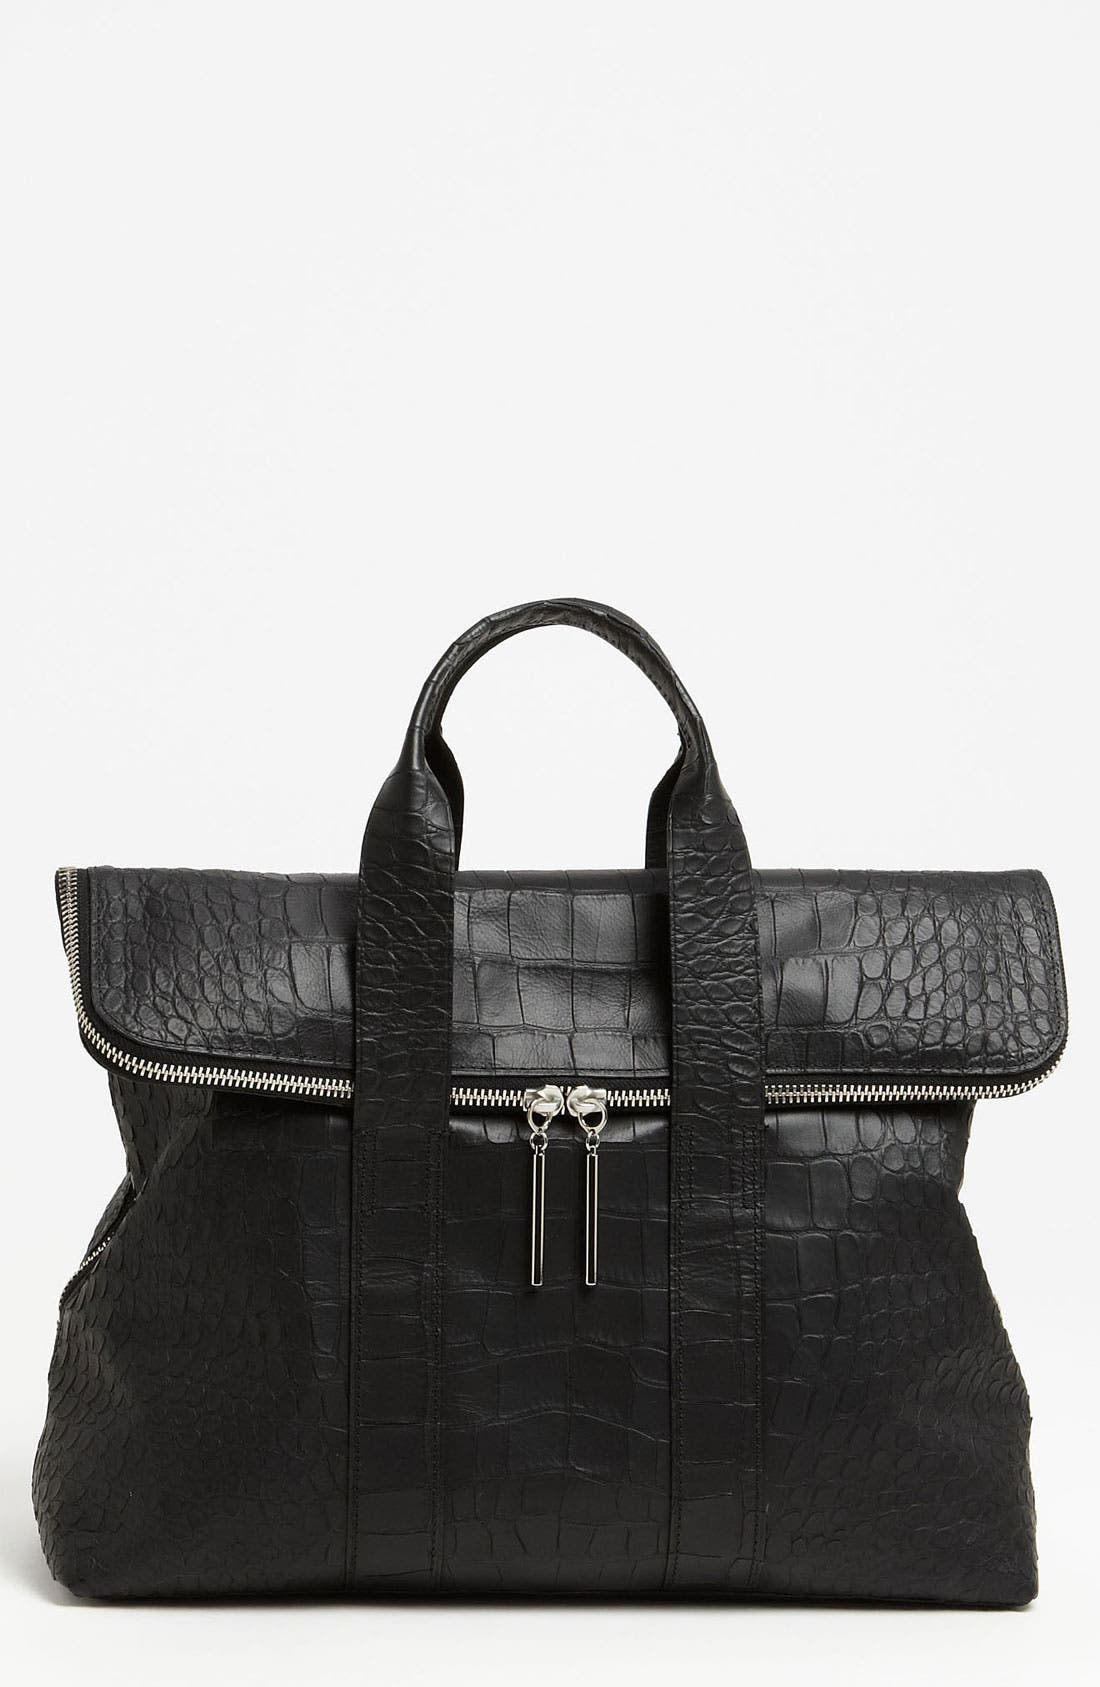 Alternate Image 1 Selected - 3.1 Phillip Lim '31 Hour' Croc Embossed Leather Tote